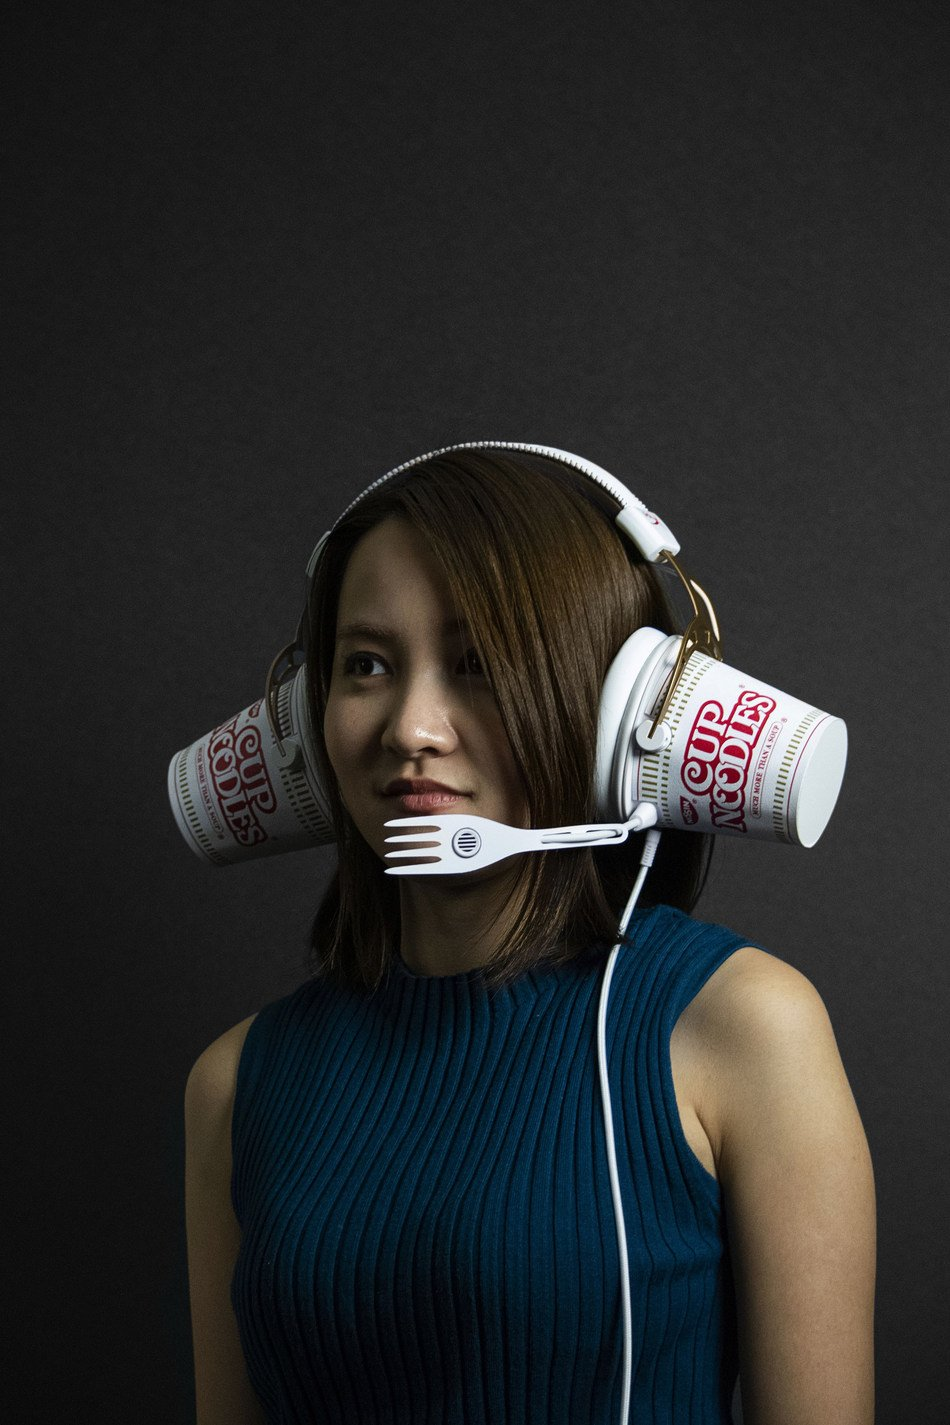 These headphones may look ridiculous, but the cups are home to tasty noodles.